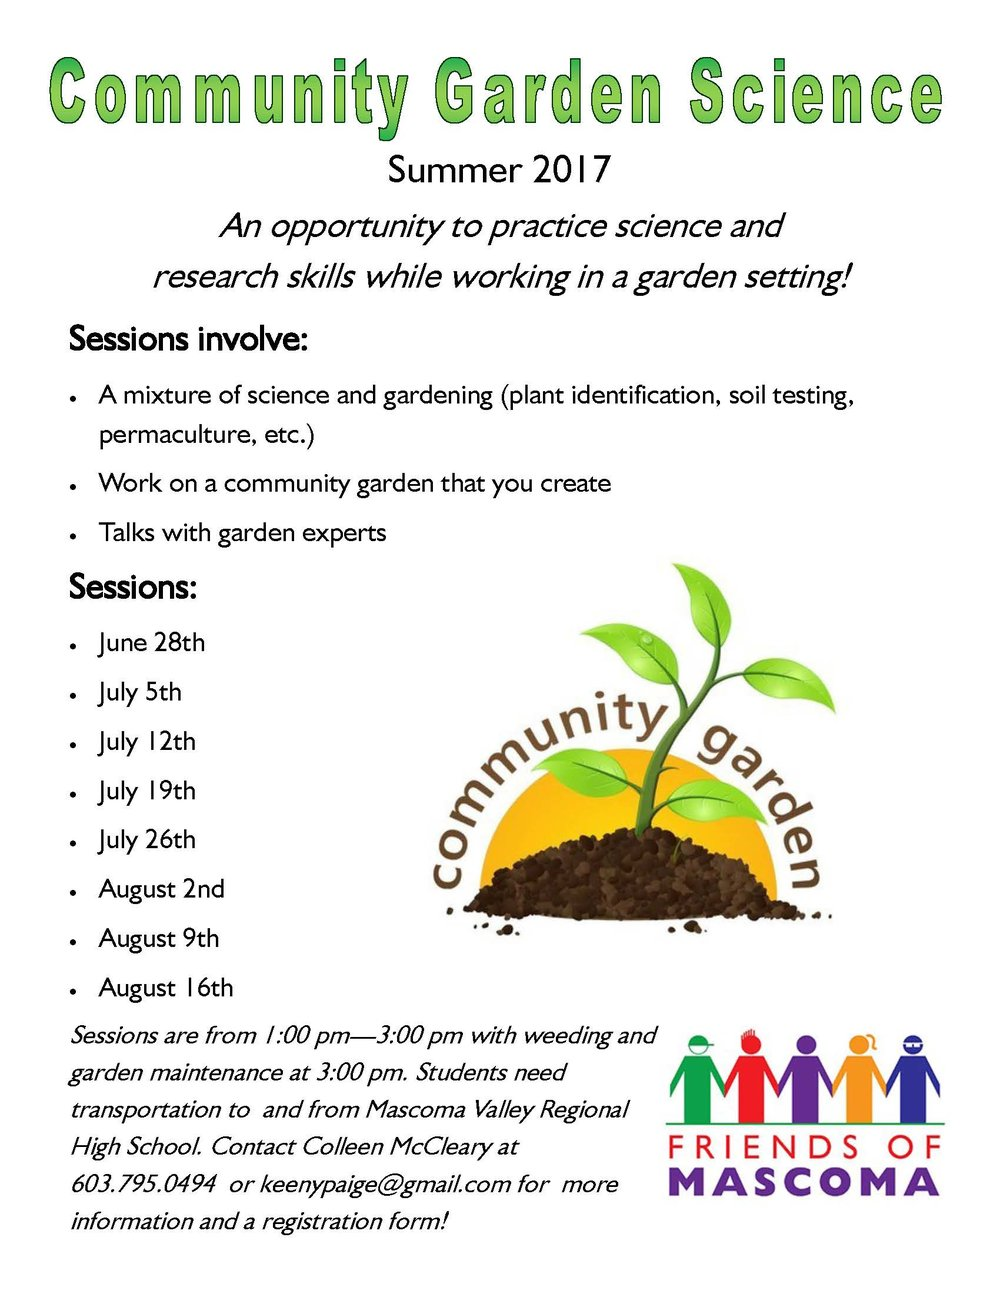 CommunityGardenScience_2017.jpg